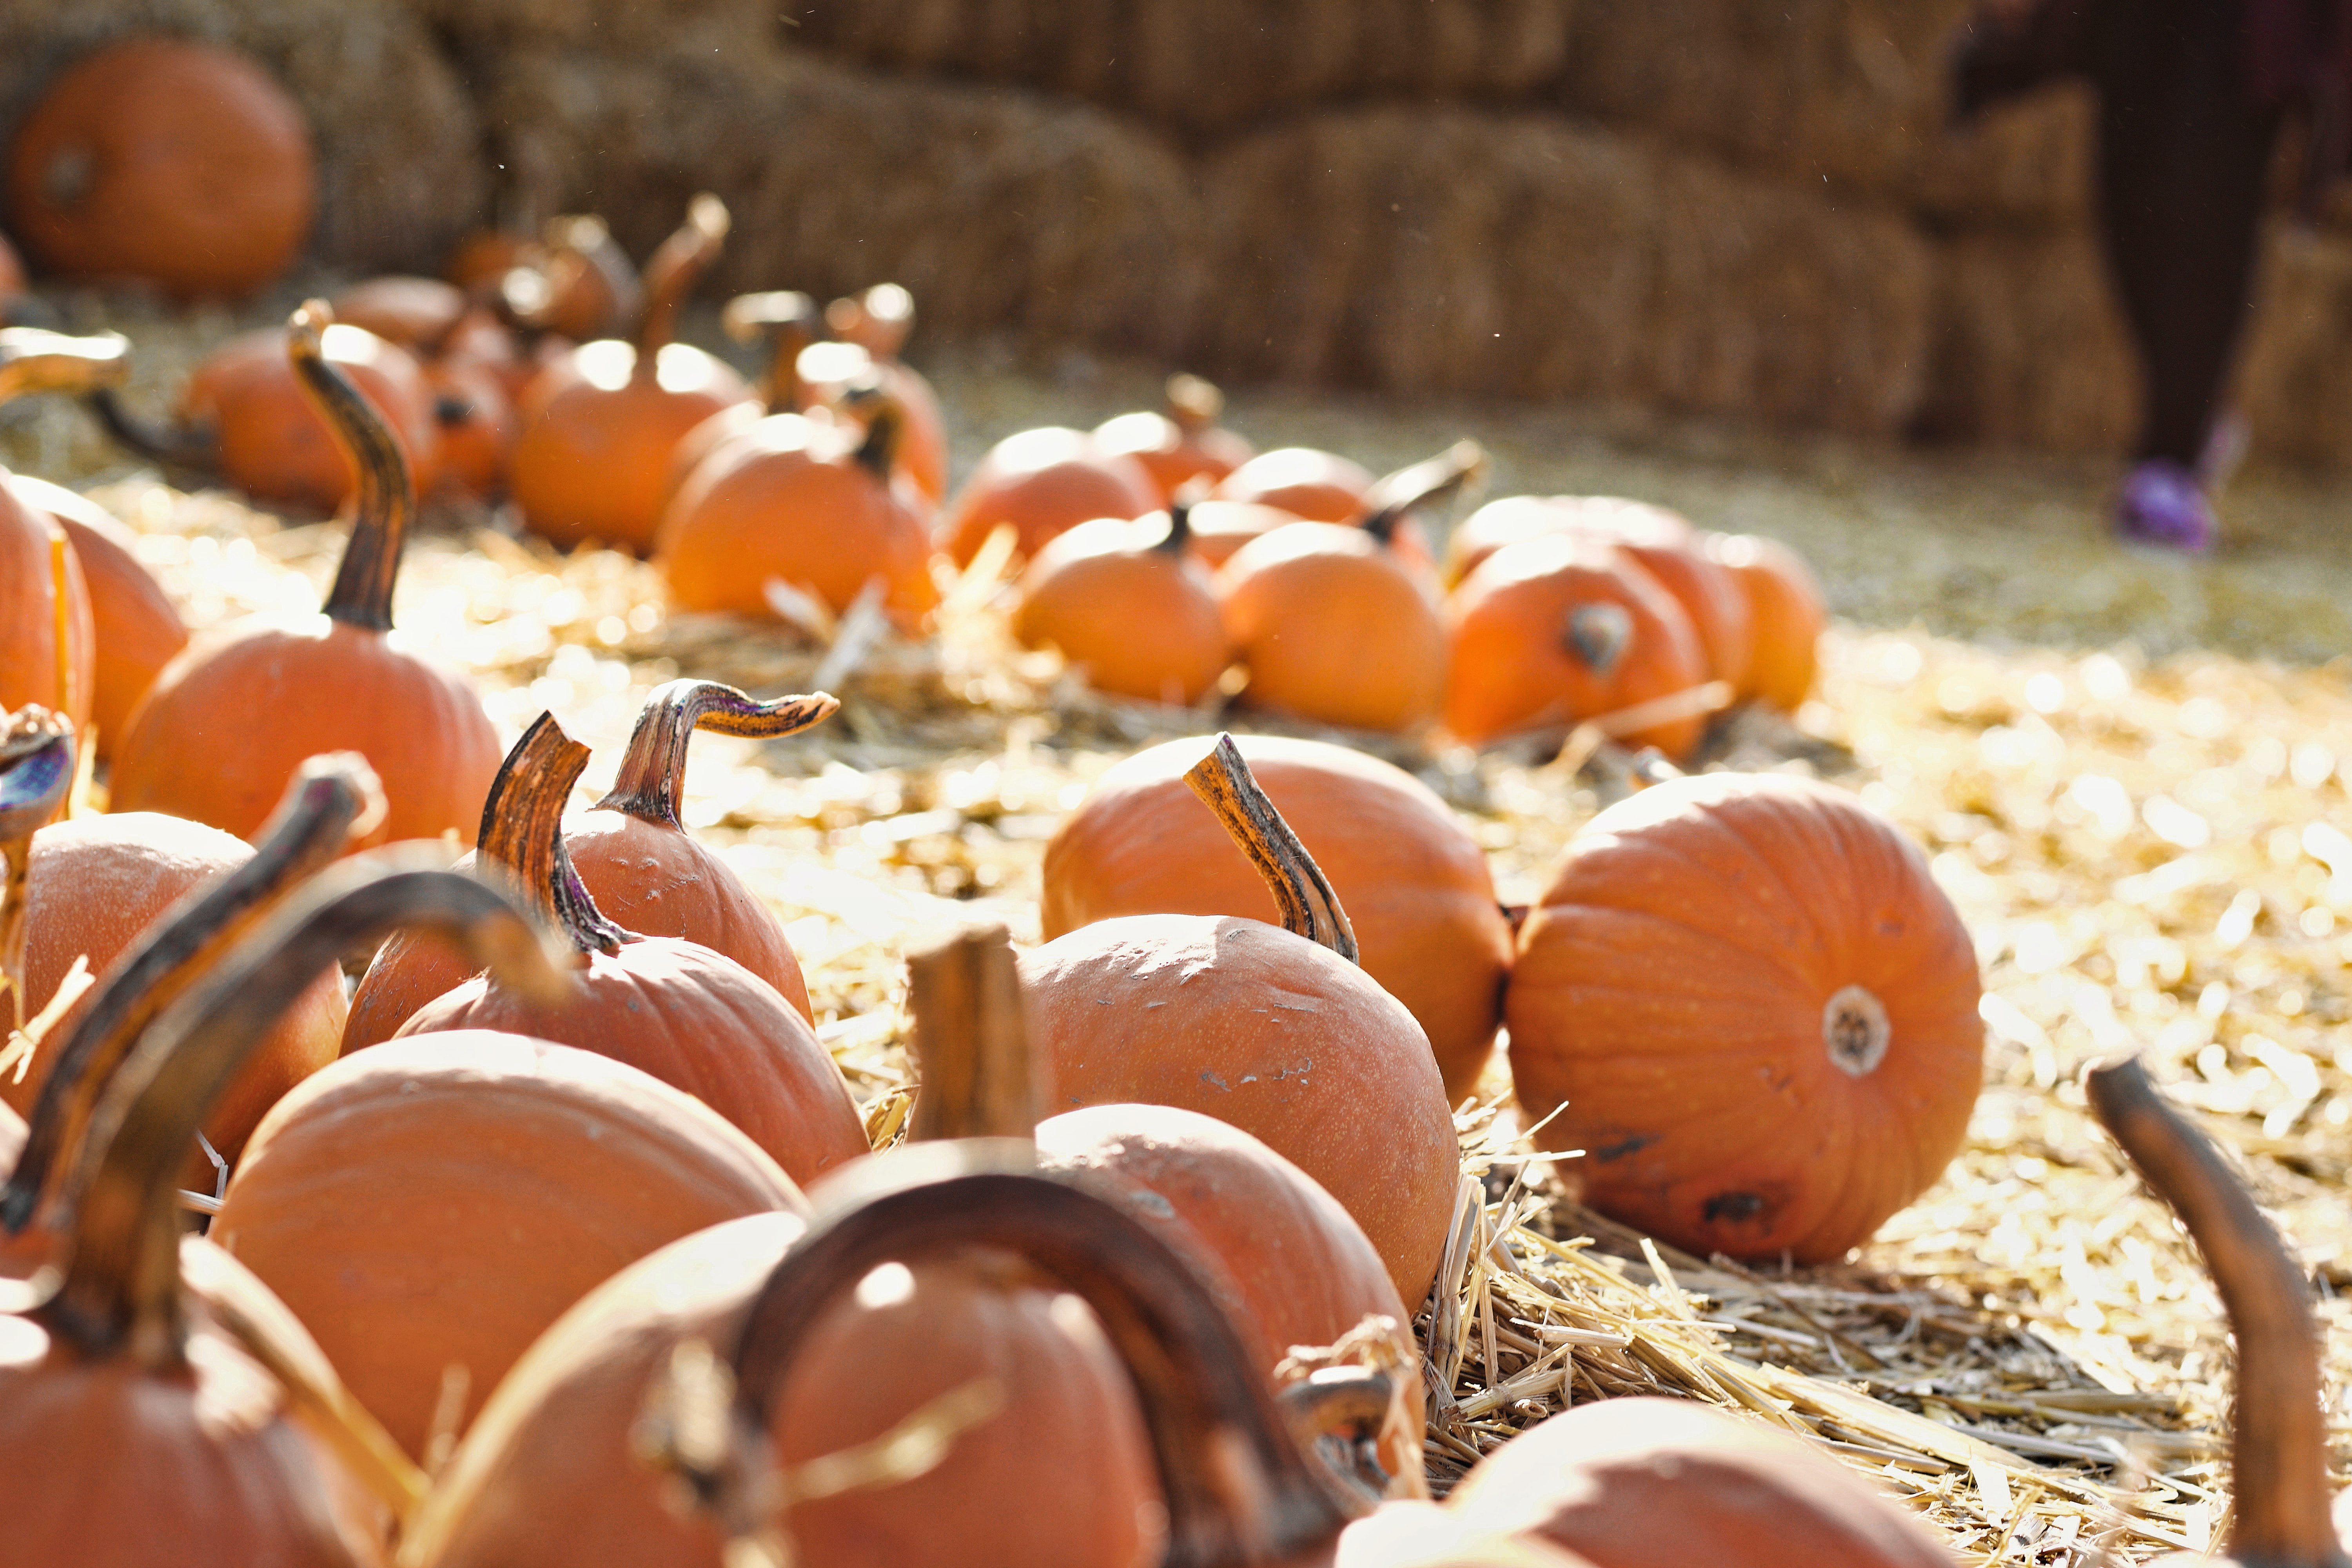 Pumkin picking at Hallowe'en, October events in Scotland